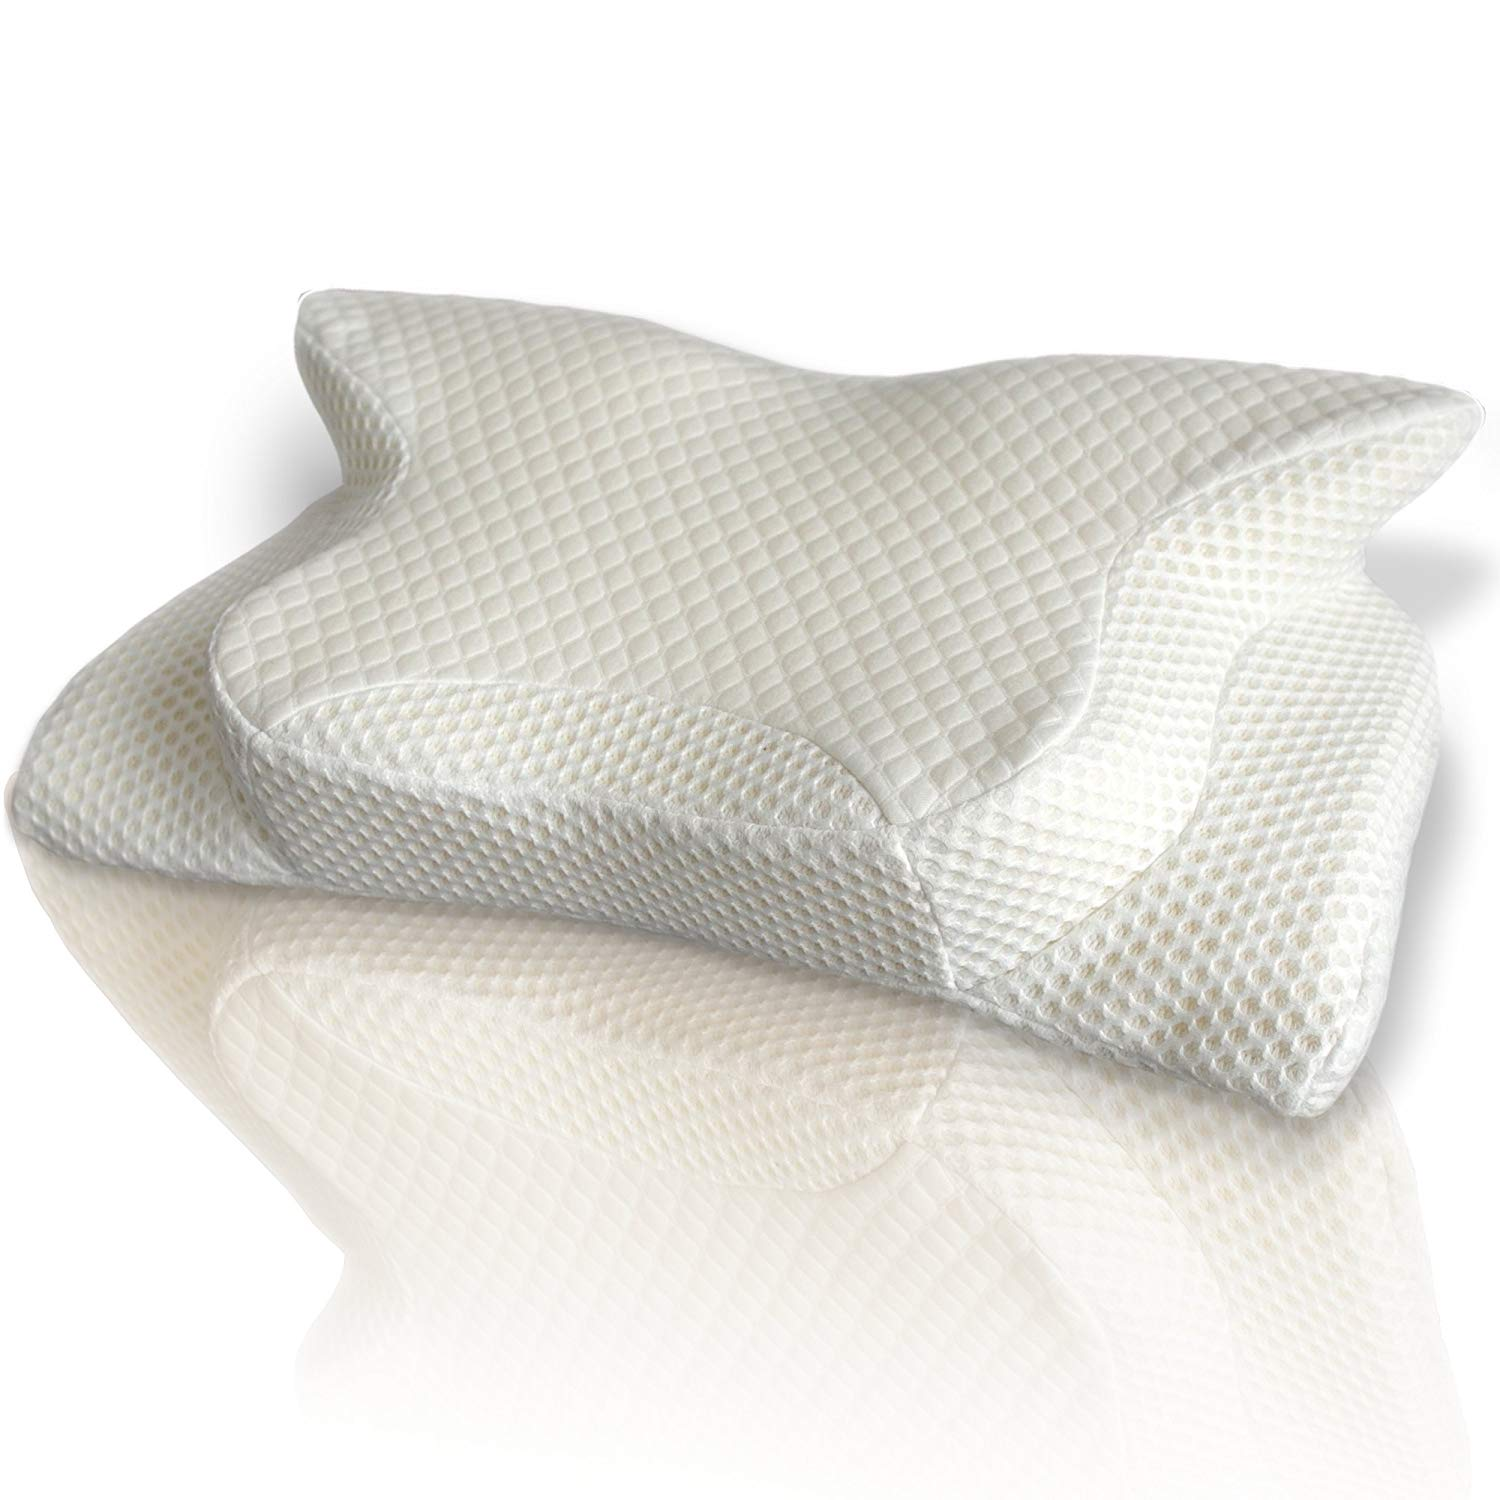 SmartDelux Pillow for Shoulder Pain Review by www.snoremagazine.com